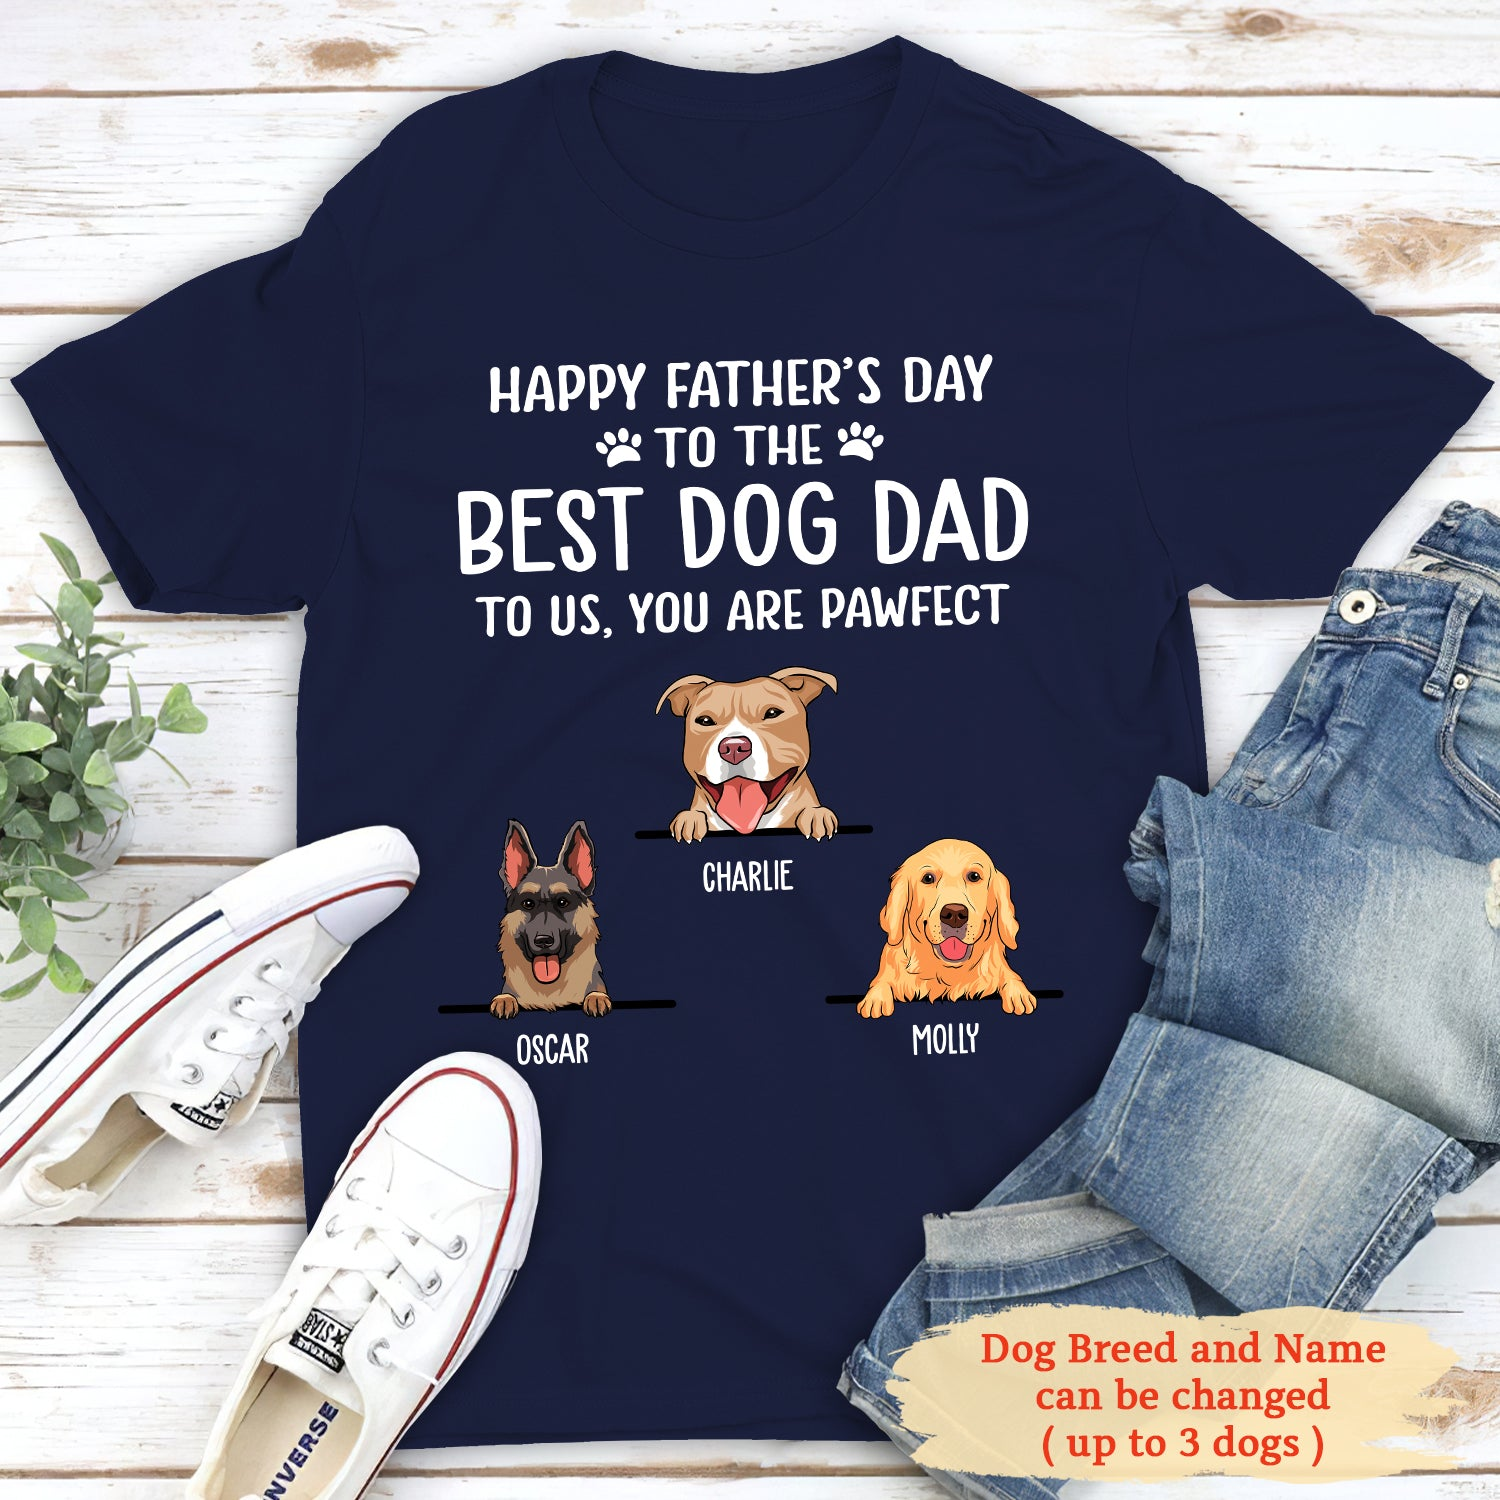 Best Dog Dad - Personalized Custom Unisex T-shirt - Dog Dad Father's Day Gifts